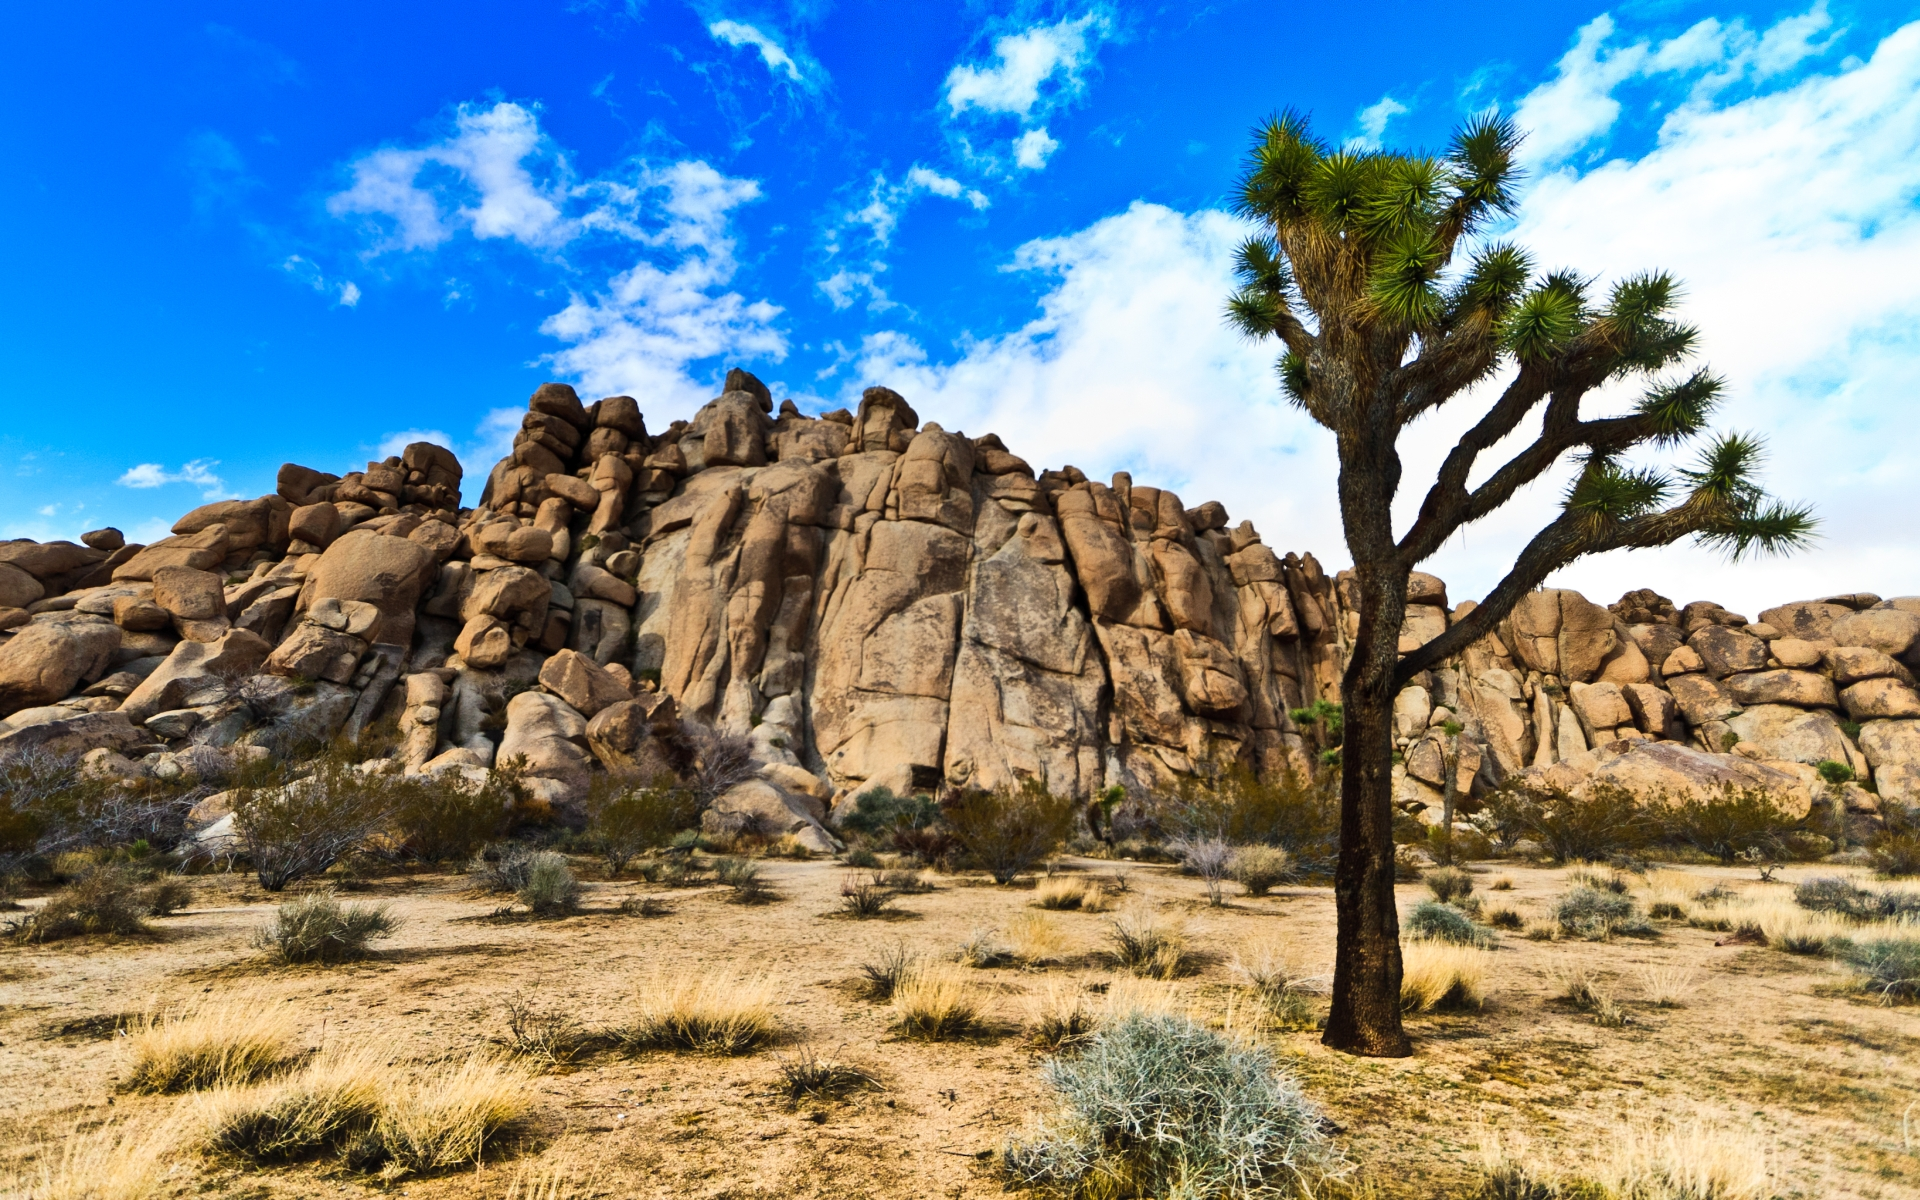 joshua tree national park Joshua tree national park resorts & hotels with spas: browse our selection of over 1826 hotels in joshua tree national park conveniently book with expedia to save.